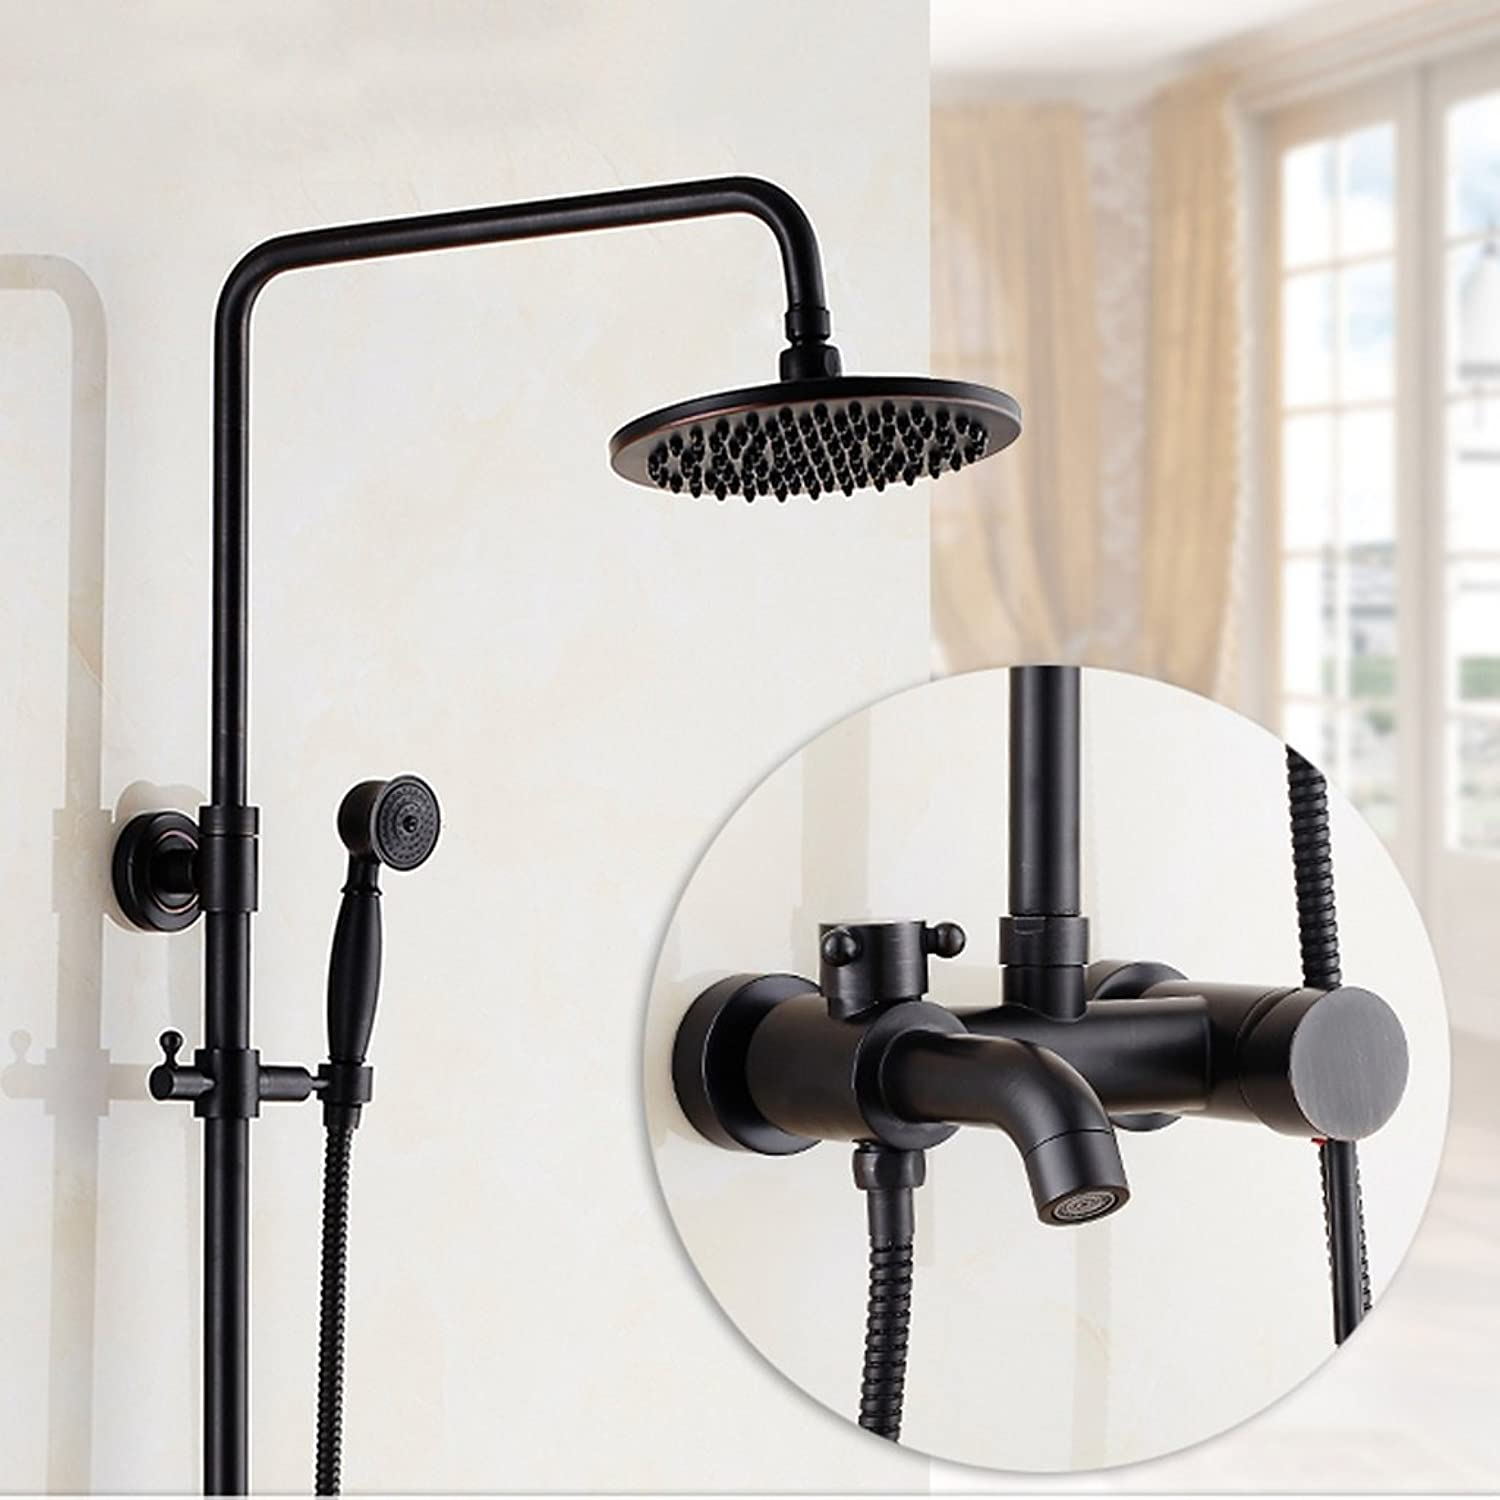 LJ Black Shower Antique Shower Suits Full Copper European Style Shower Head Faucet Can Lift Up And Down ( Size   B )